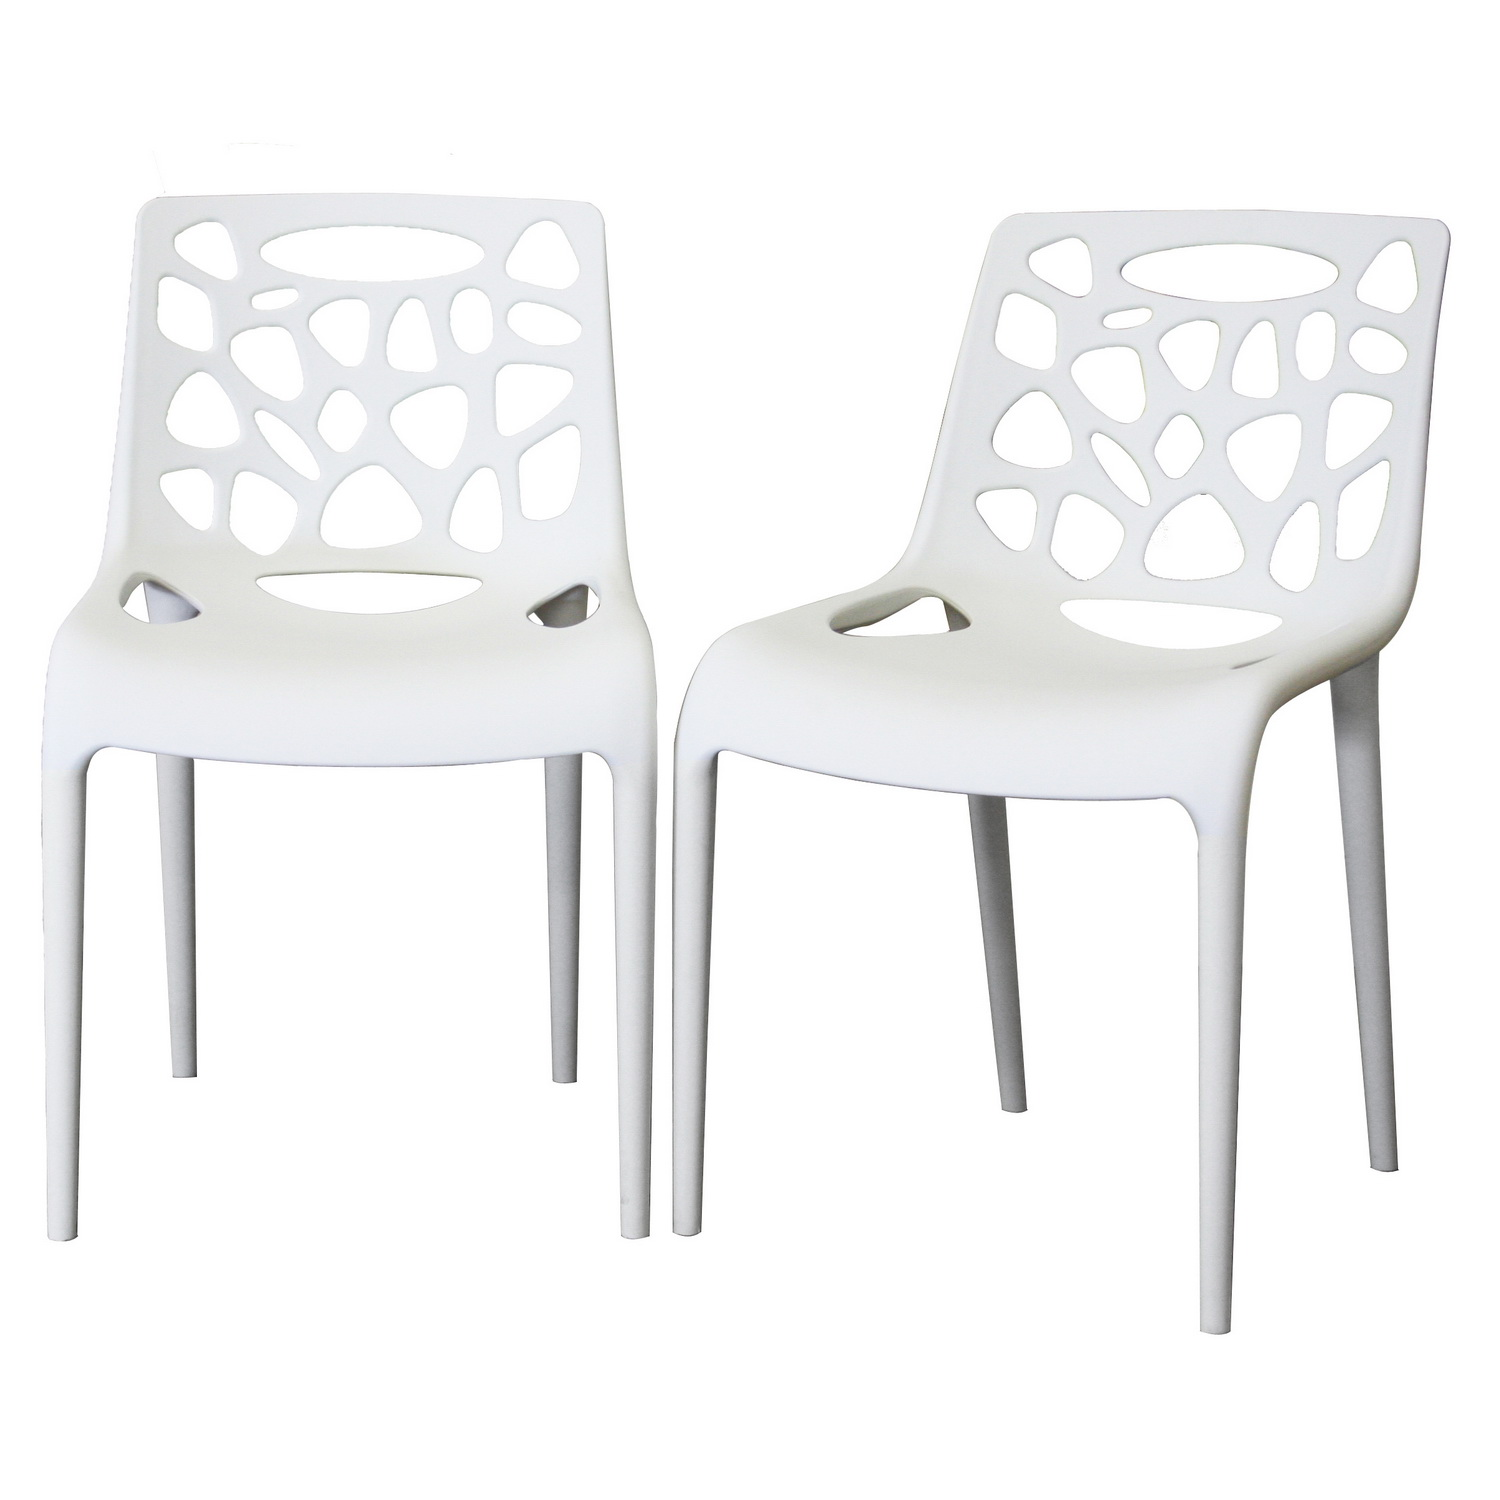 White Plastic Modern Chairs White Modern Dining Chair Chair Pads And Cushions